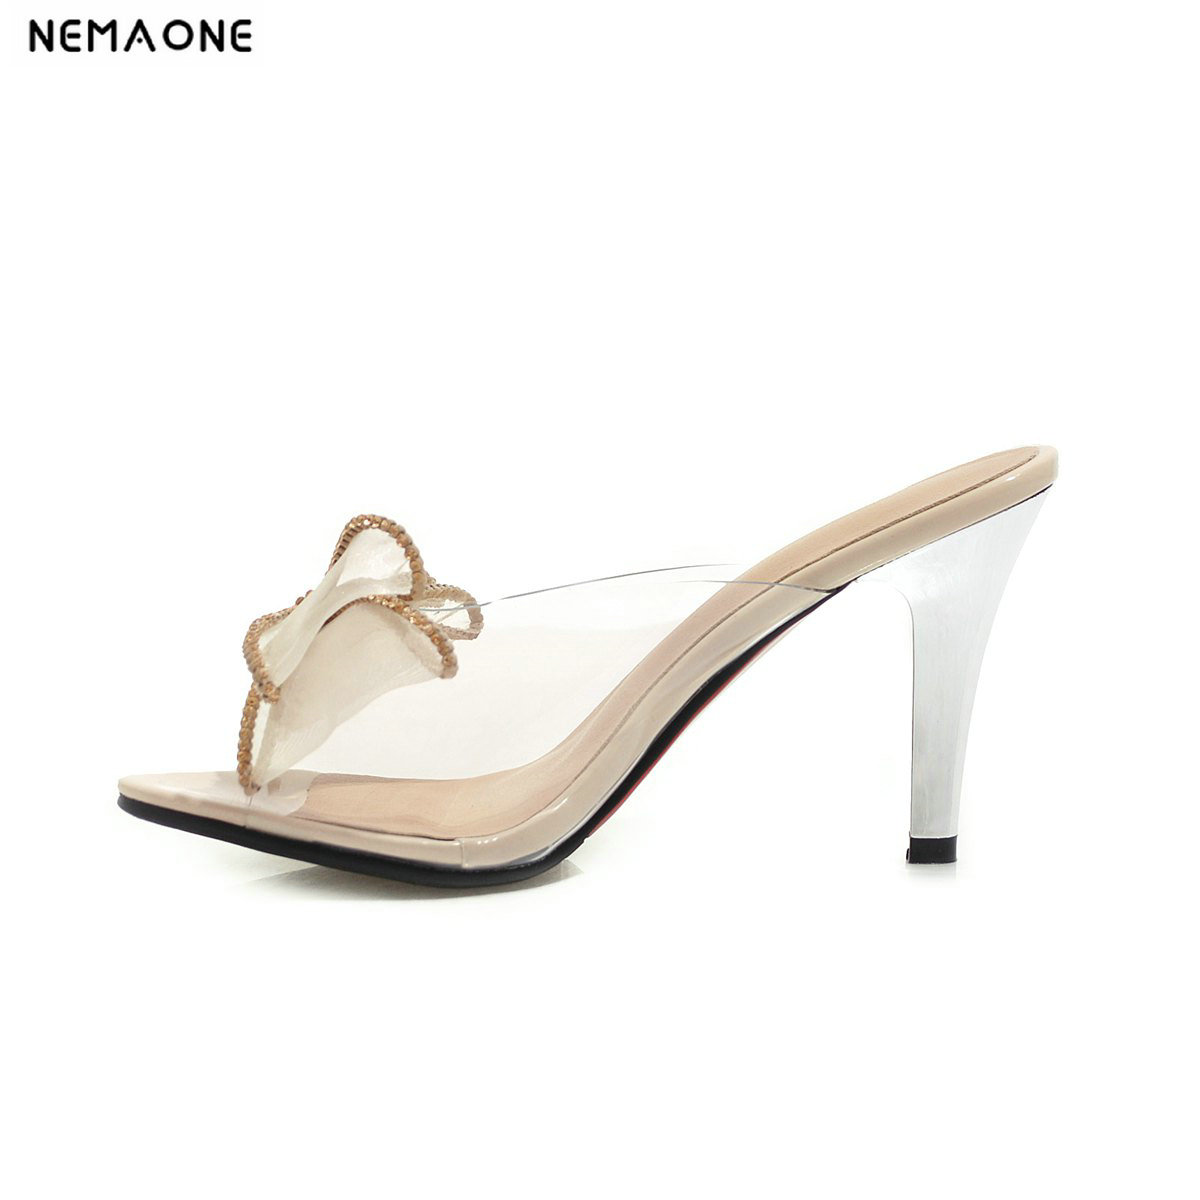 NEMAONE summer high heels slippers woman clear pvc bowties fashion slides big size mules ladies sandals large size 48